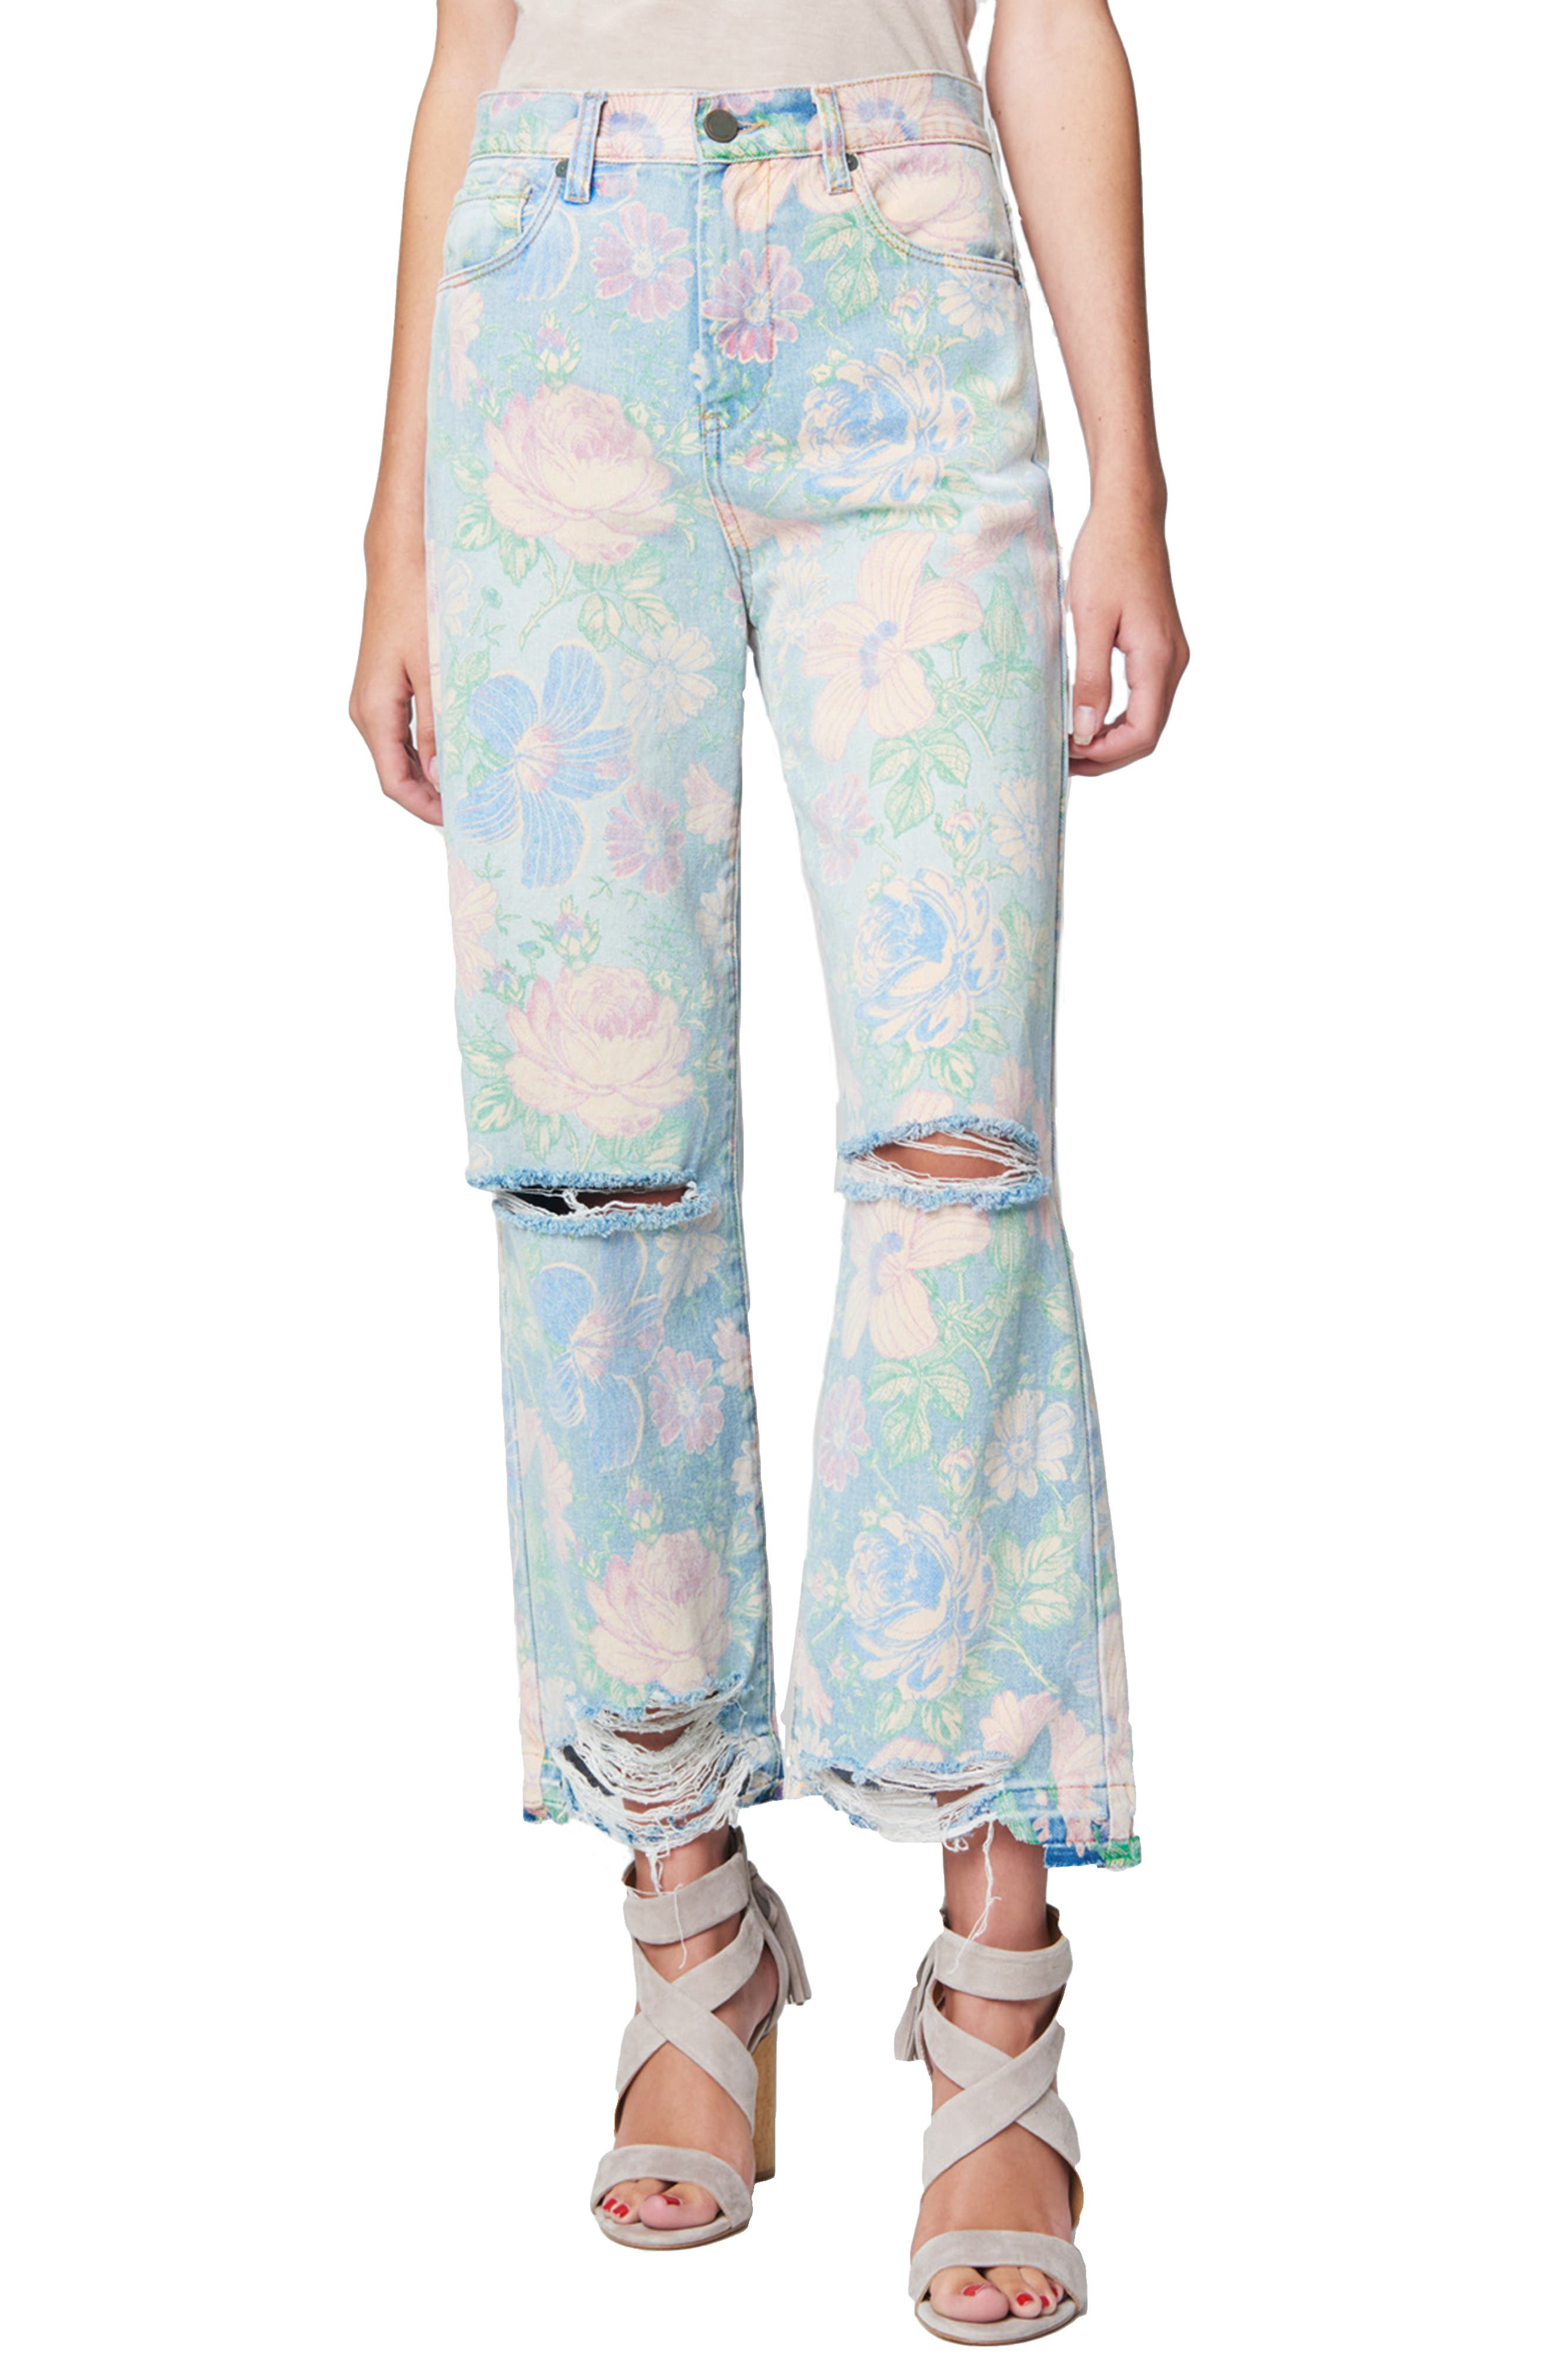 60s – 70s Pants, Jeans, Hippie, Bell Bottoms, Jumpsuits Womens Blanknyc High Waist Destroyed Flare Jeans $128.00 AT vintagedancer.com